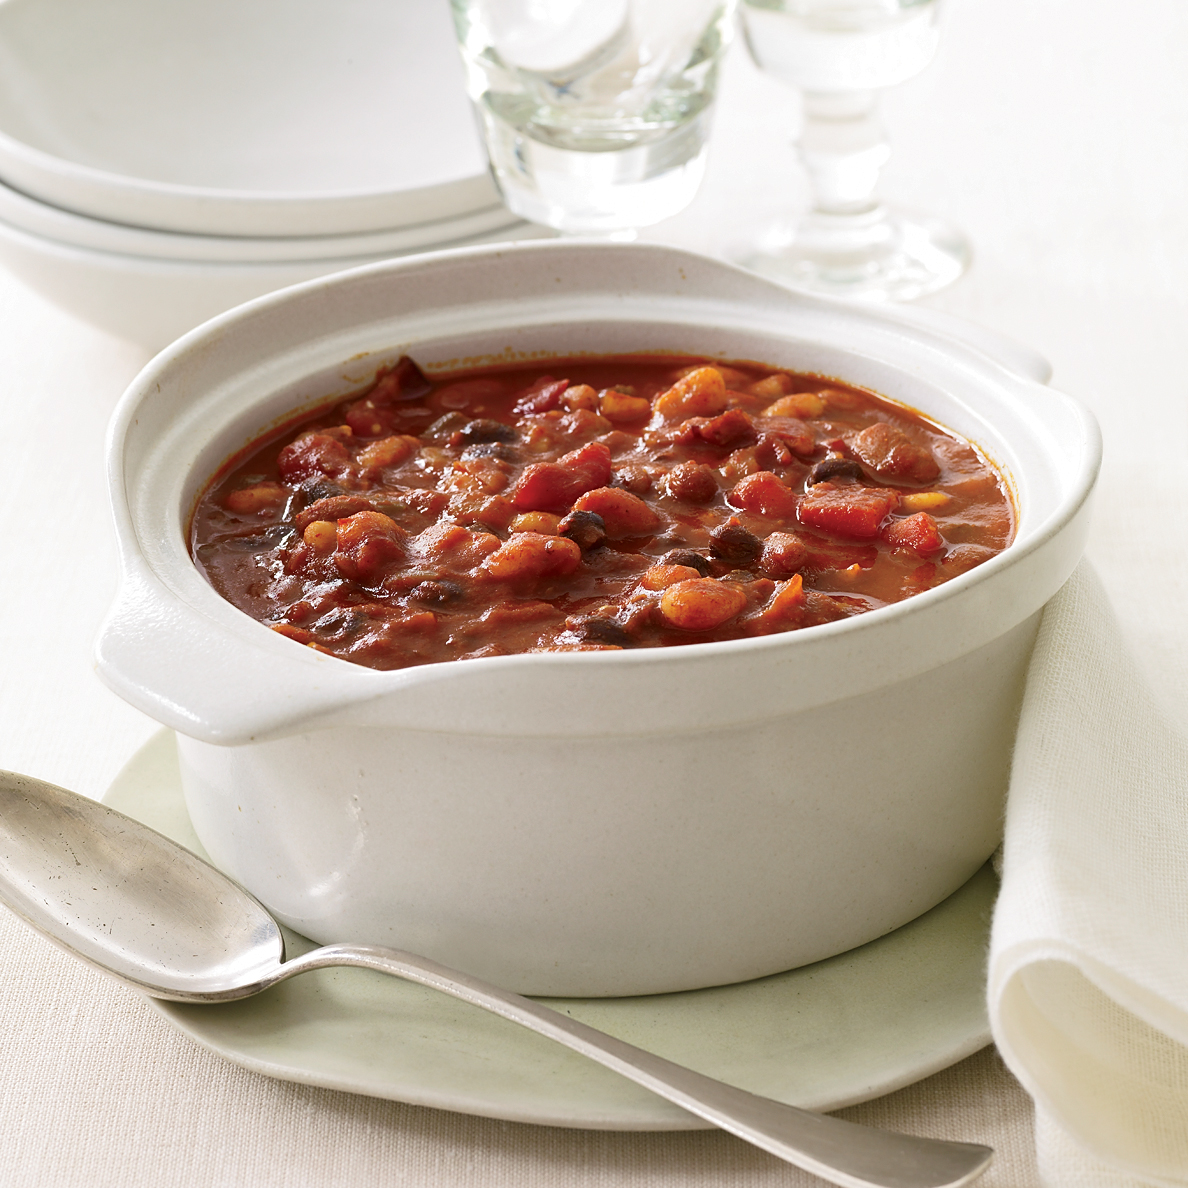 Spicy Turkey Chili recommendations